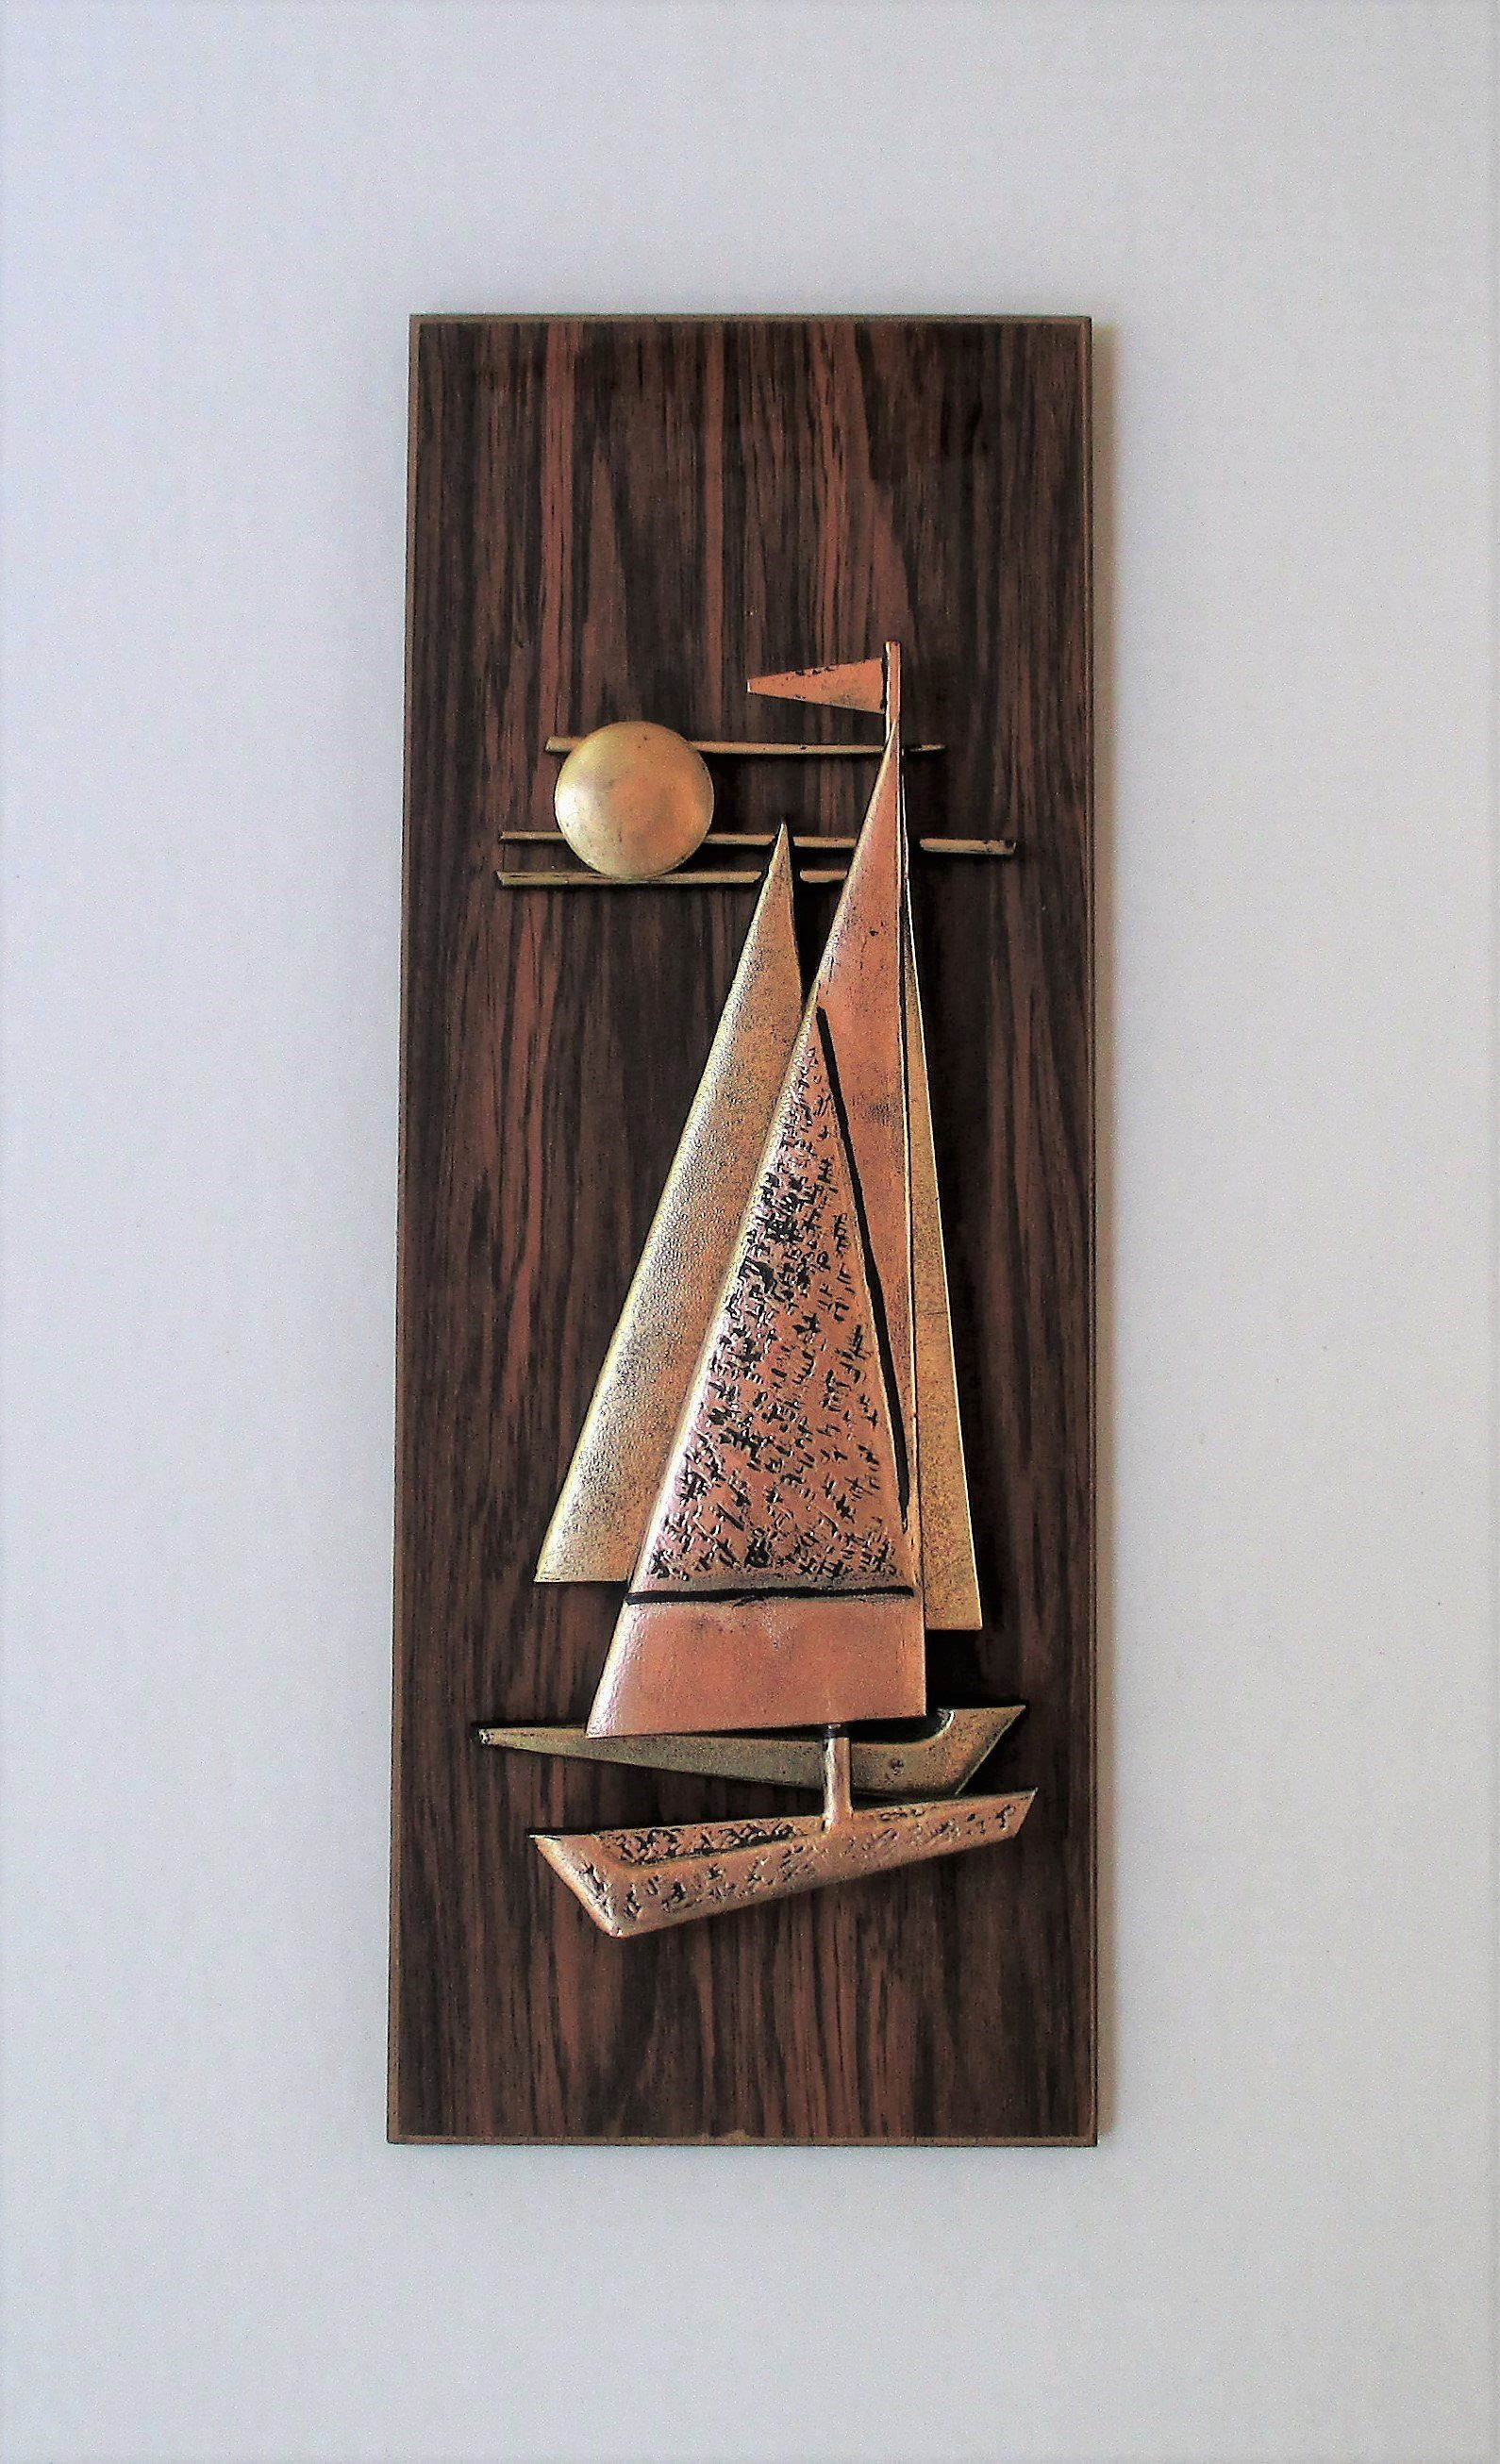 Mid Century Sailboat Under The Moon Wall Art Plaque Vintage Nautical Themed Hanging Retro Beach House Decor